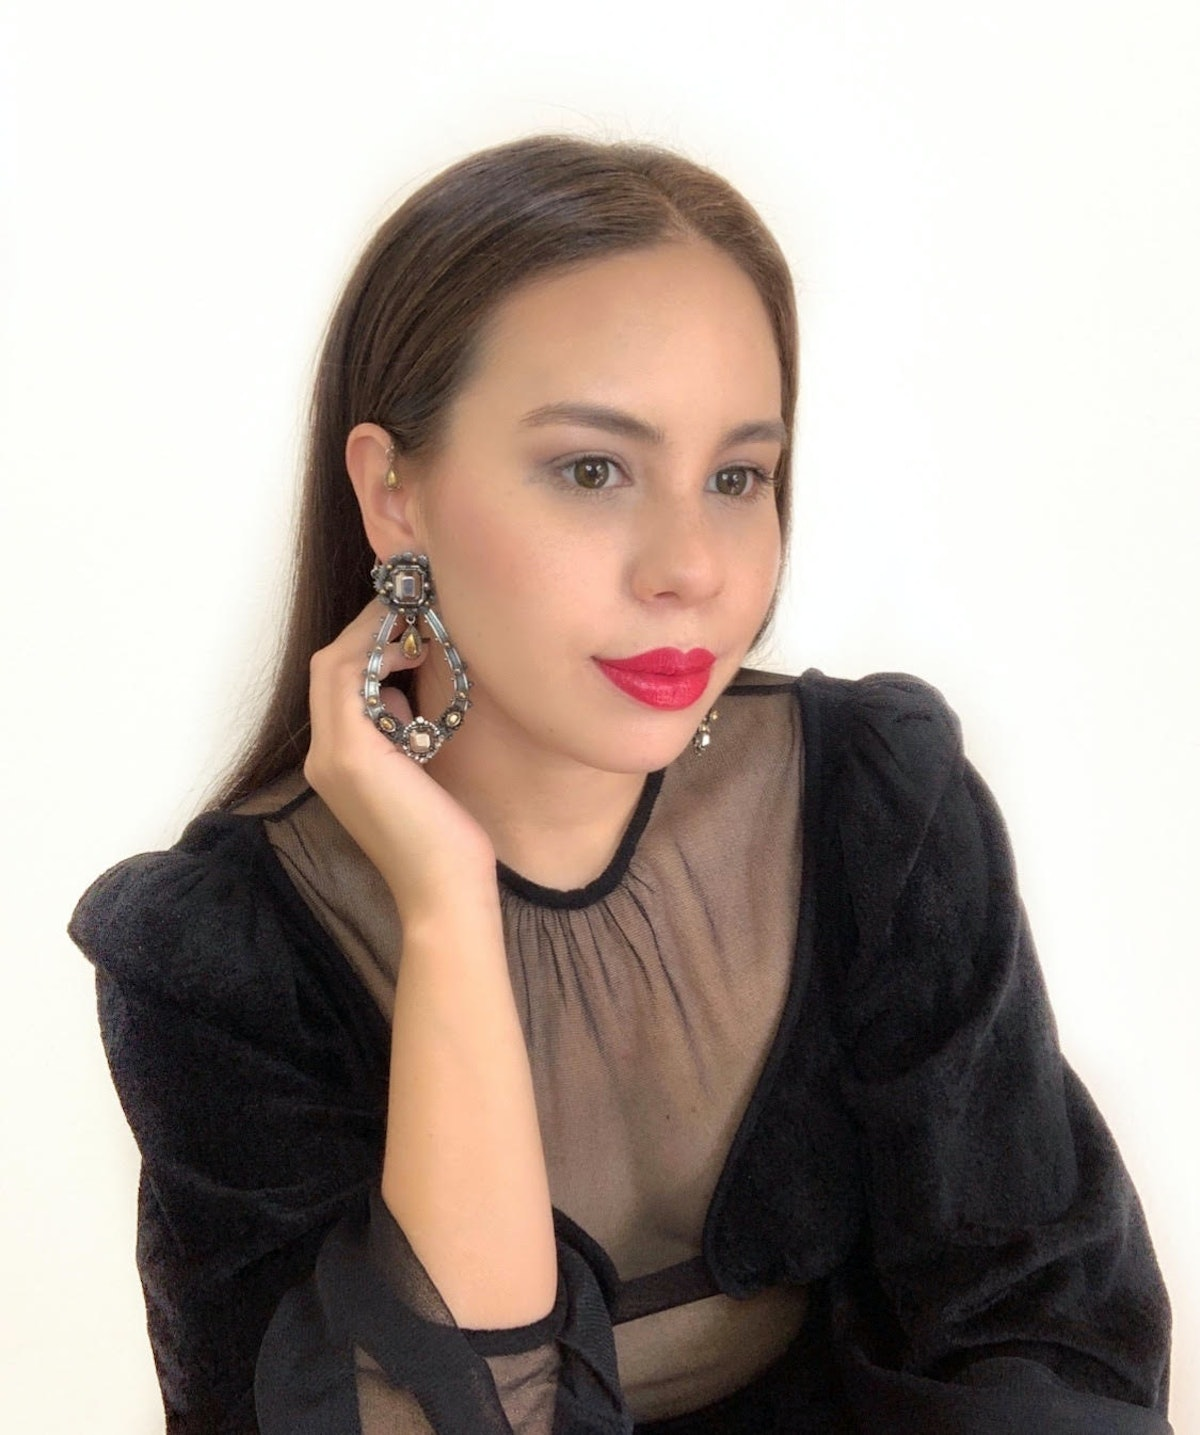 Gen Zer Nathaly, 25, in a bold lip and soft glam makeup to celebrate post-pandemic summer.